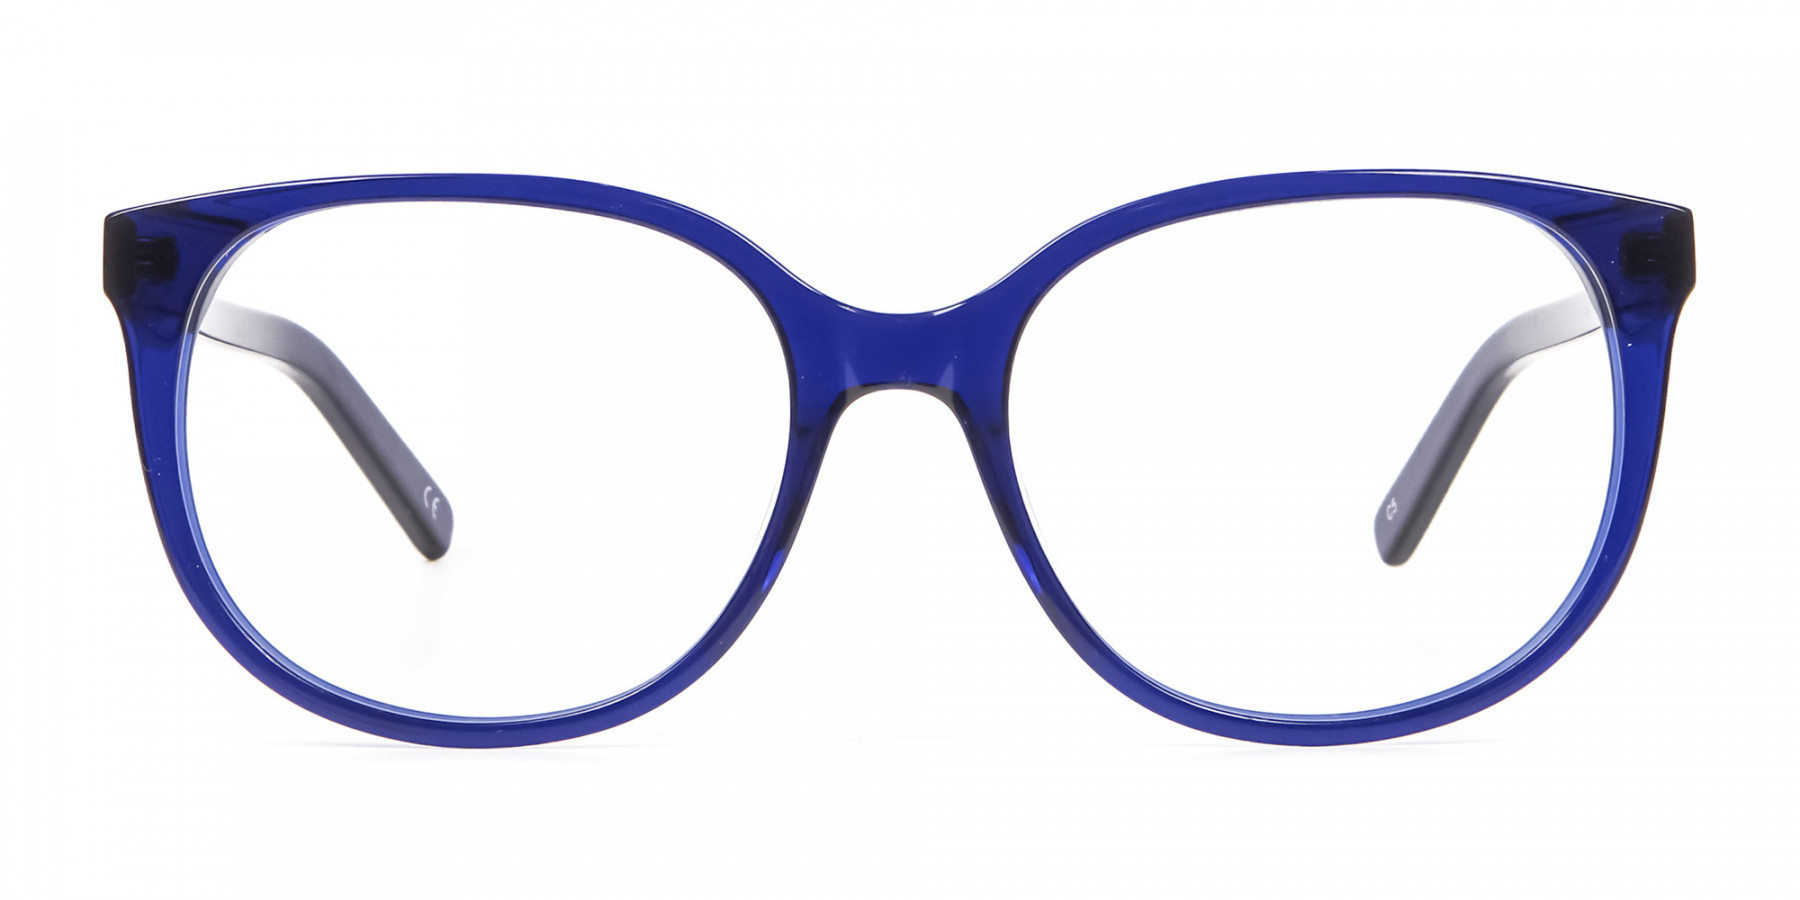 Clever Look with Navy Blue Frame